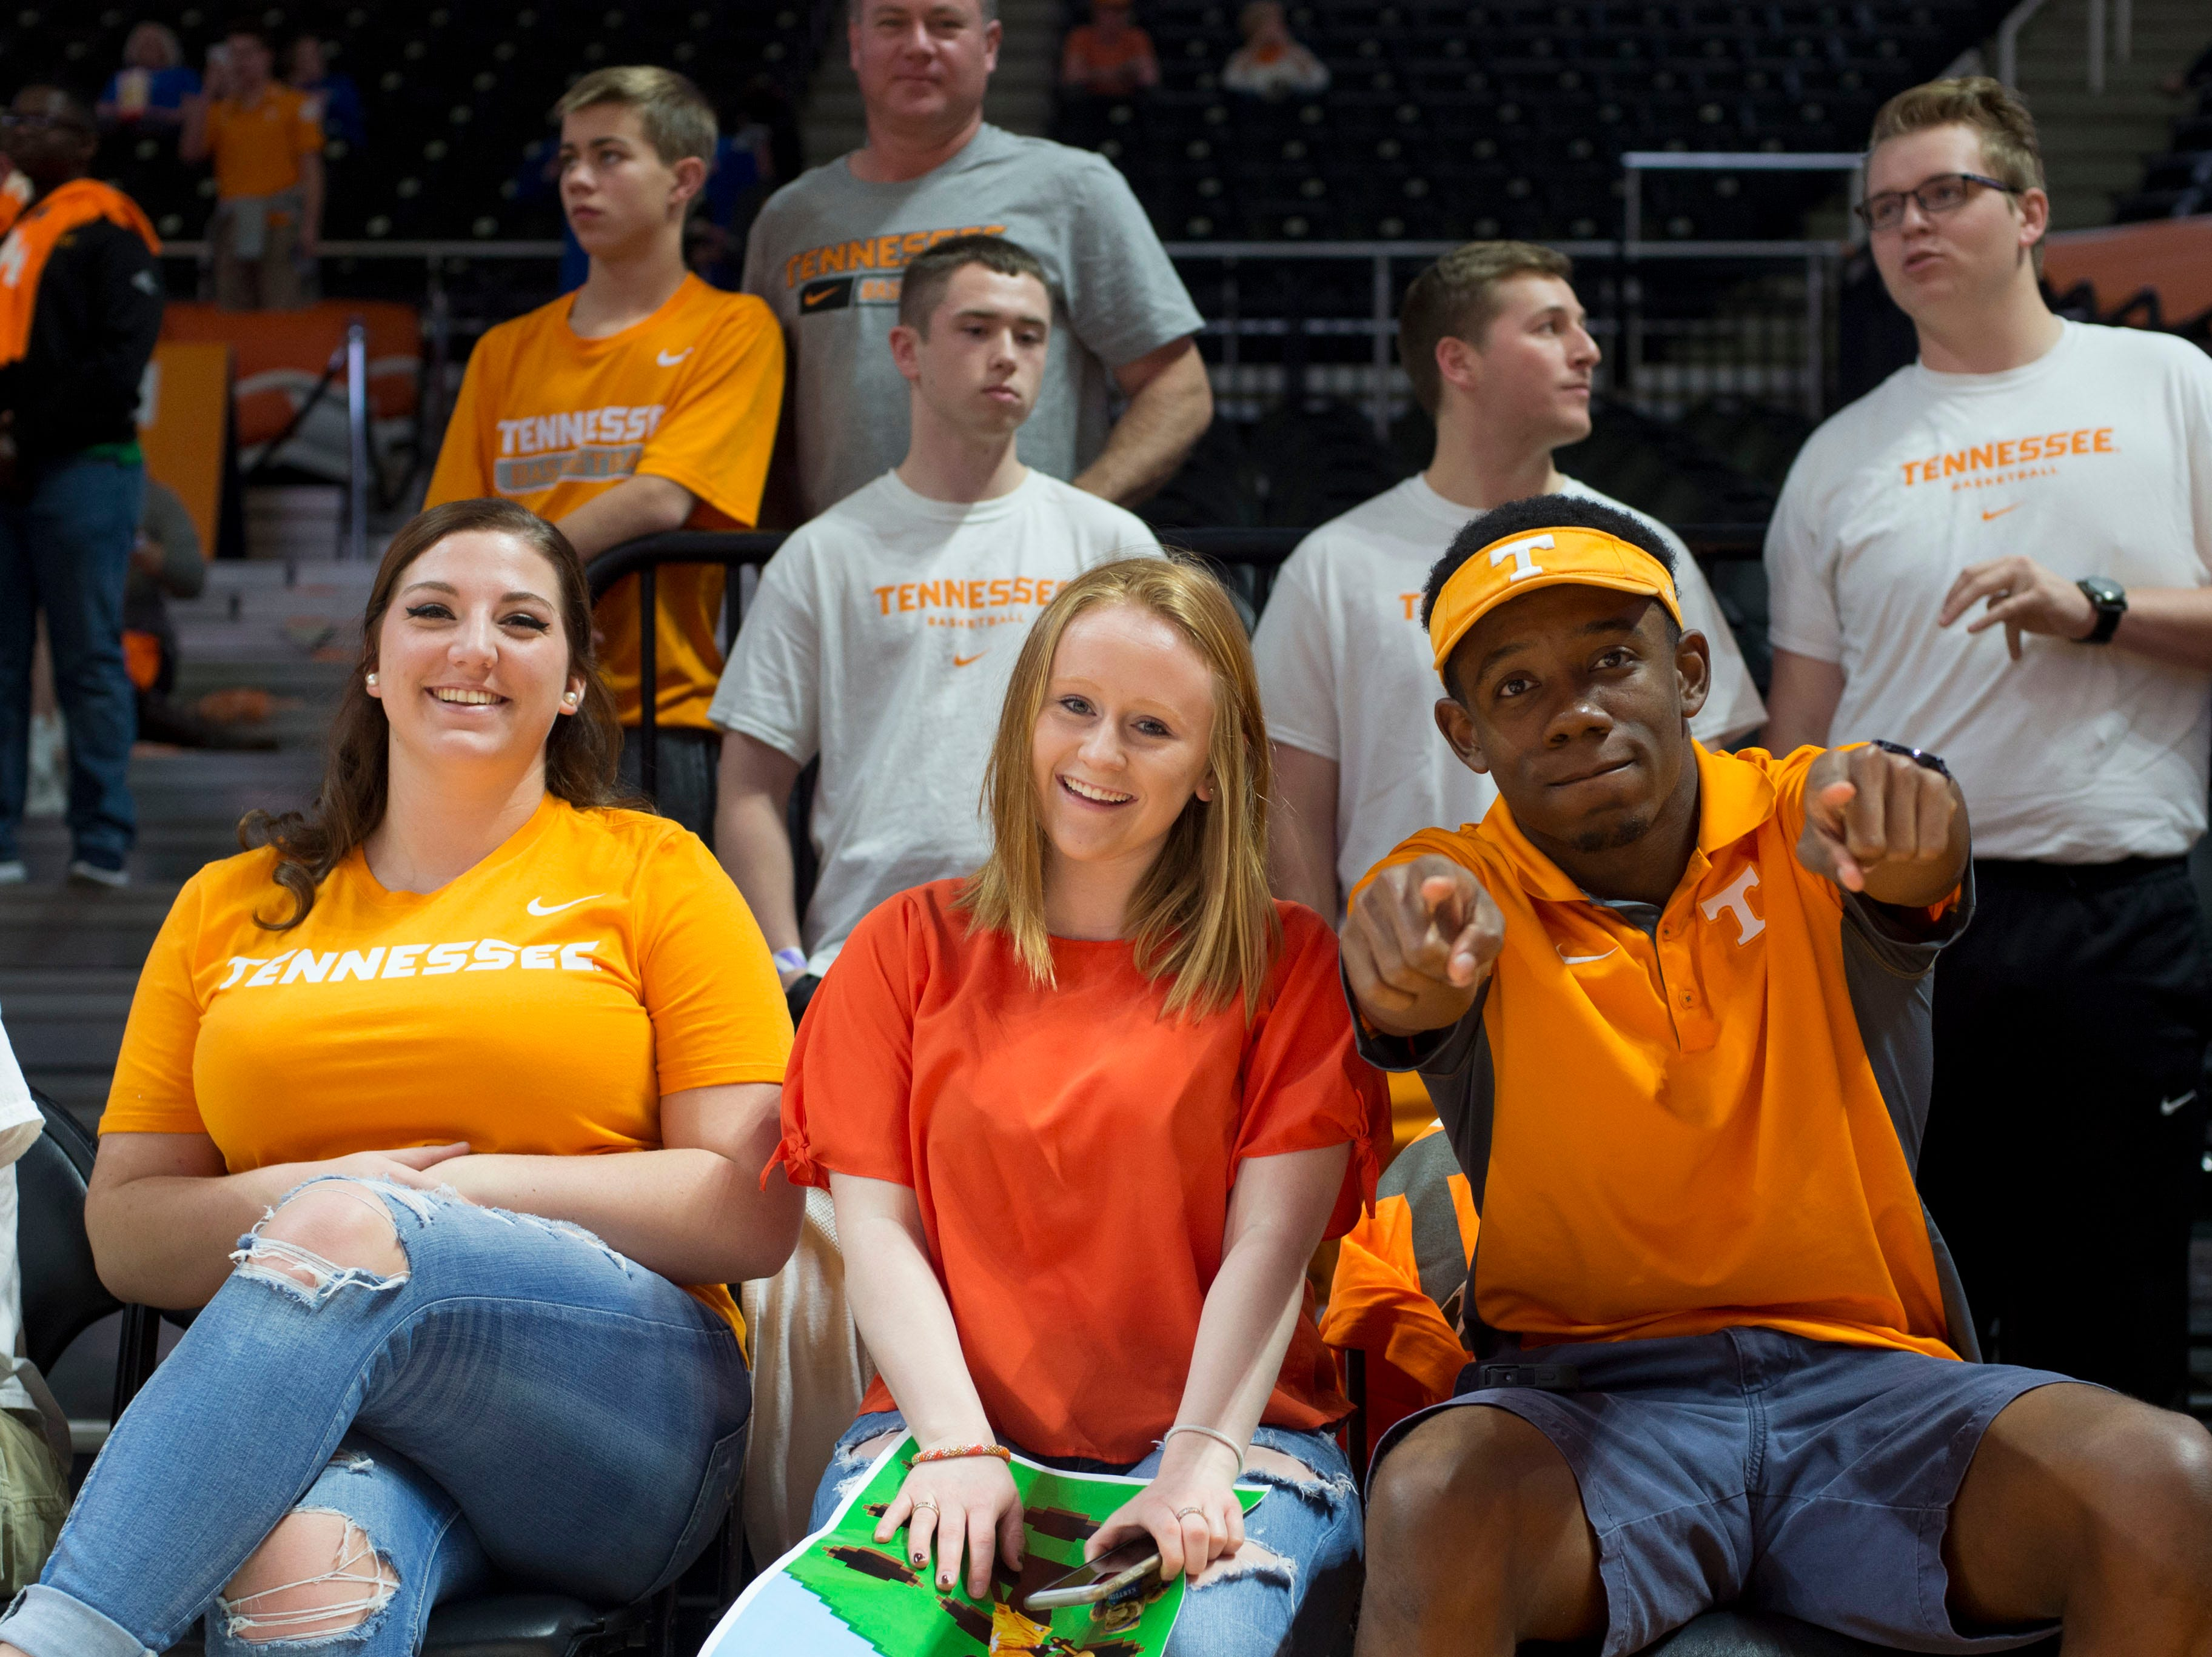 Tennessee fans, from left, Olivia Grant, Alyssa Frohock, and Trennie Williams with courtside seats the Tennessee and Kentucky basketball game in Thompson-Boling Arena on Tuesday, February 2, 2016.